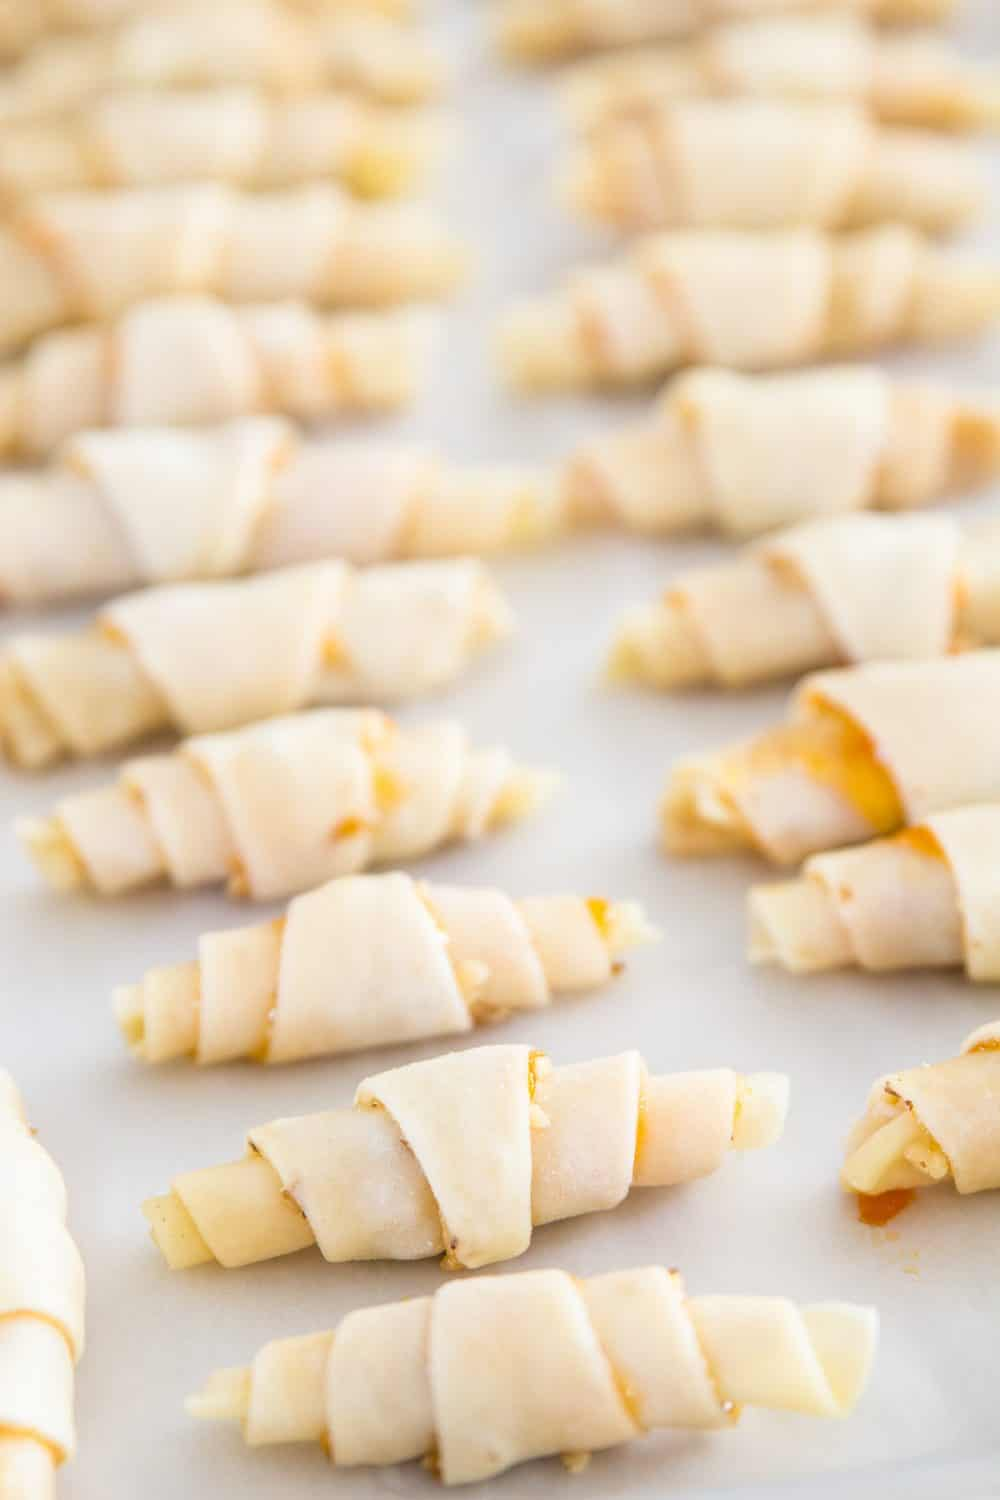 unbaked rugelach cookies on a baking sheet